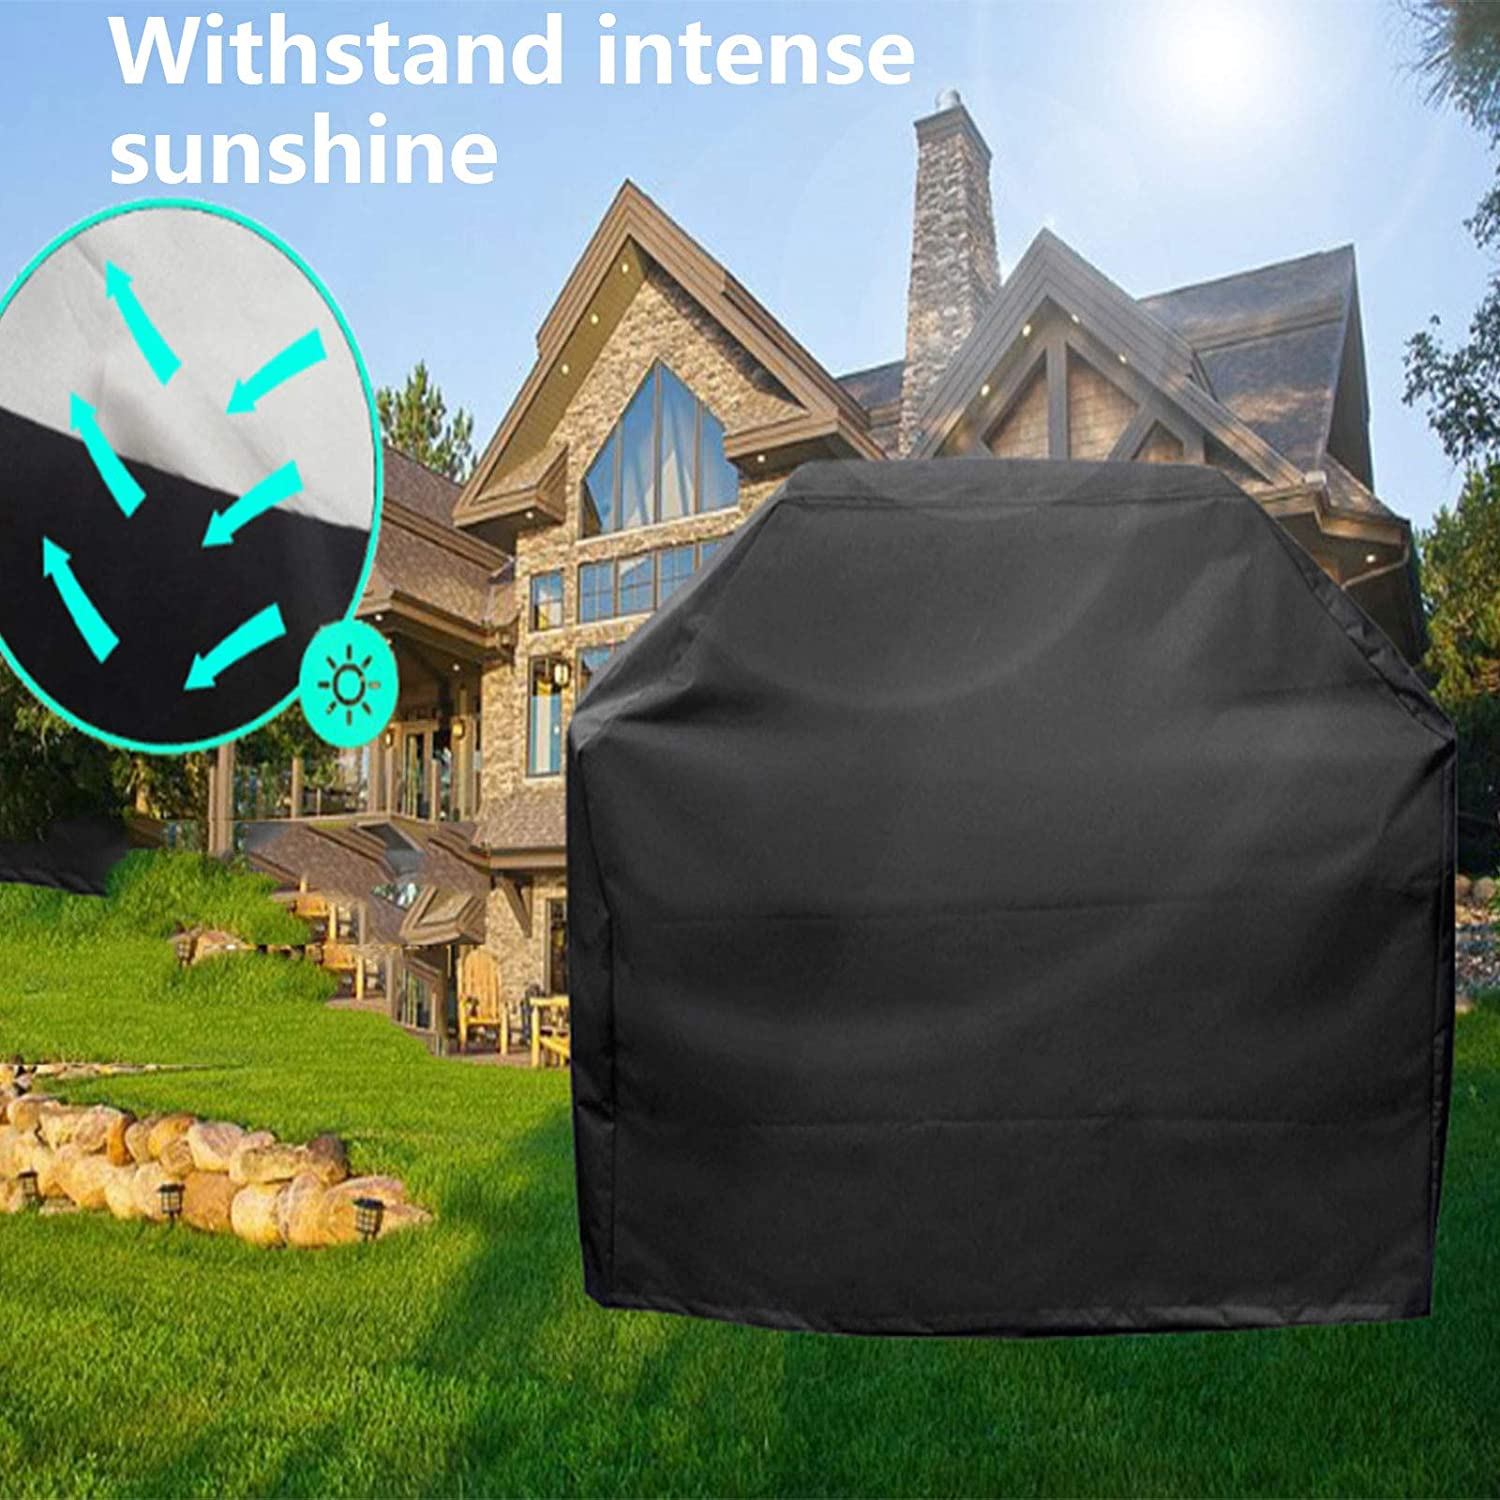 ZJERTF Gas Outdoor Grill Cloth Cover Barbecue Grill Cloth Cover Grill Cover Barbecue Cover Outdoor BBQ Cover Barbecue Grill Cover for Barbecue grill Covering Outdoor Items Rectangle 80x66x100cm